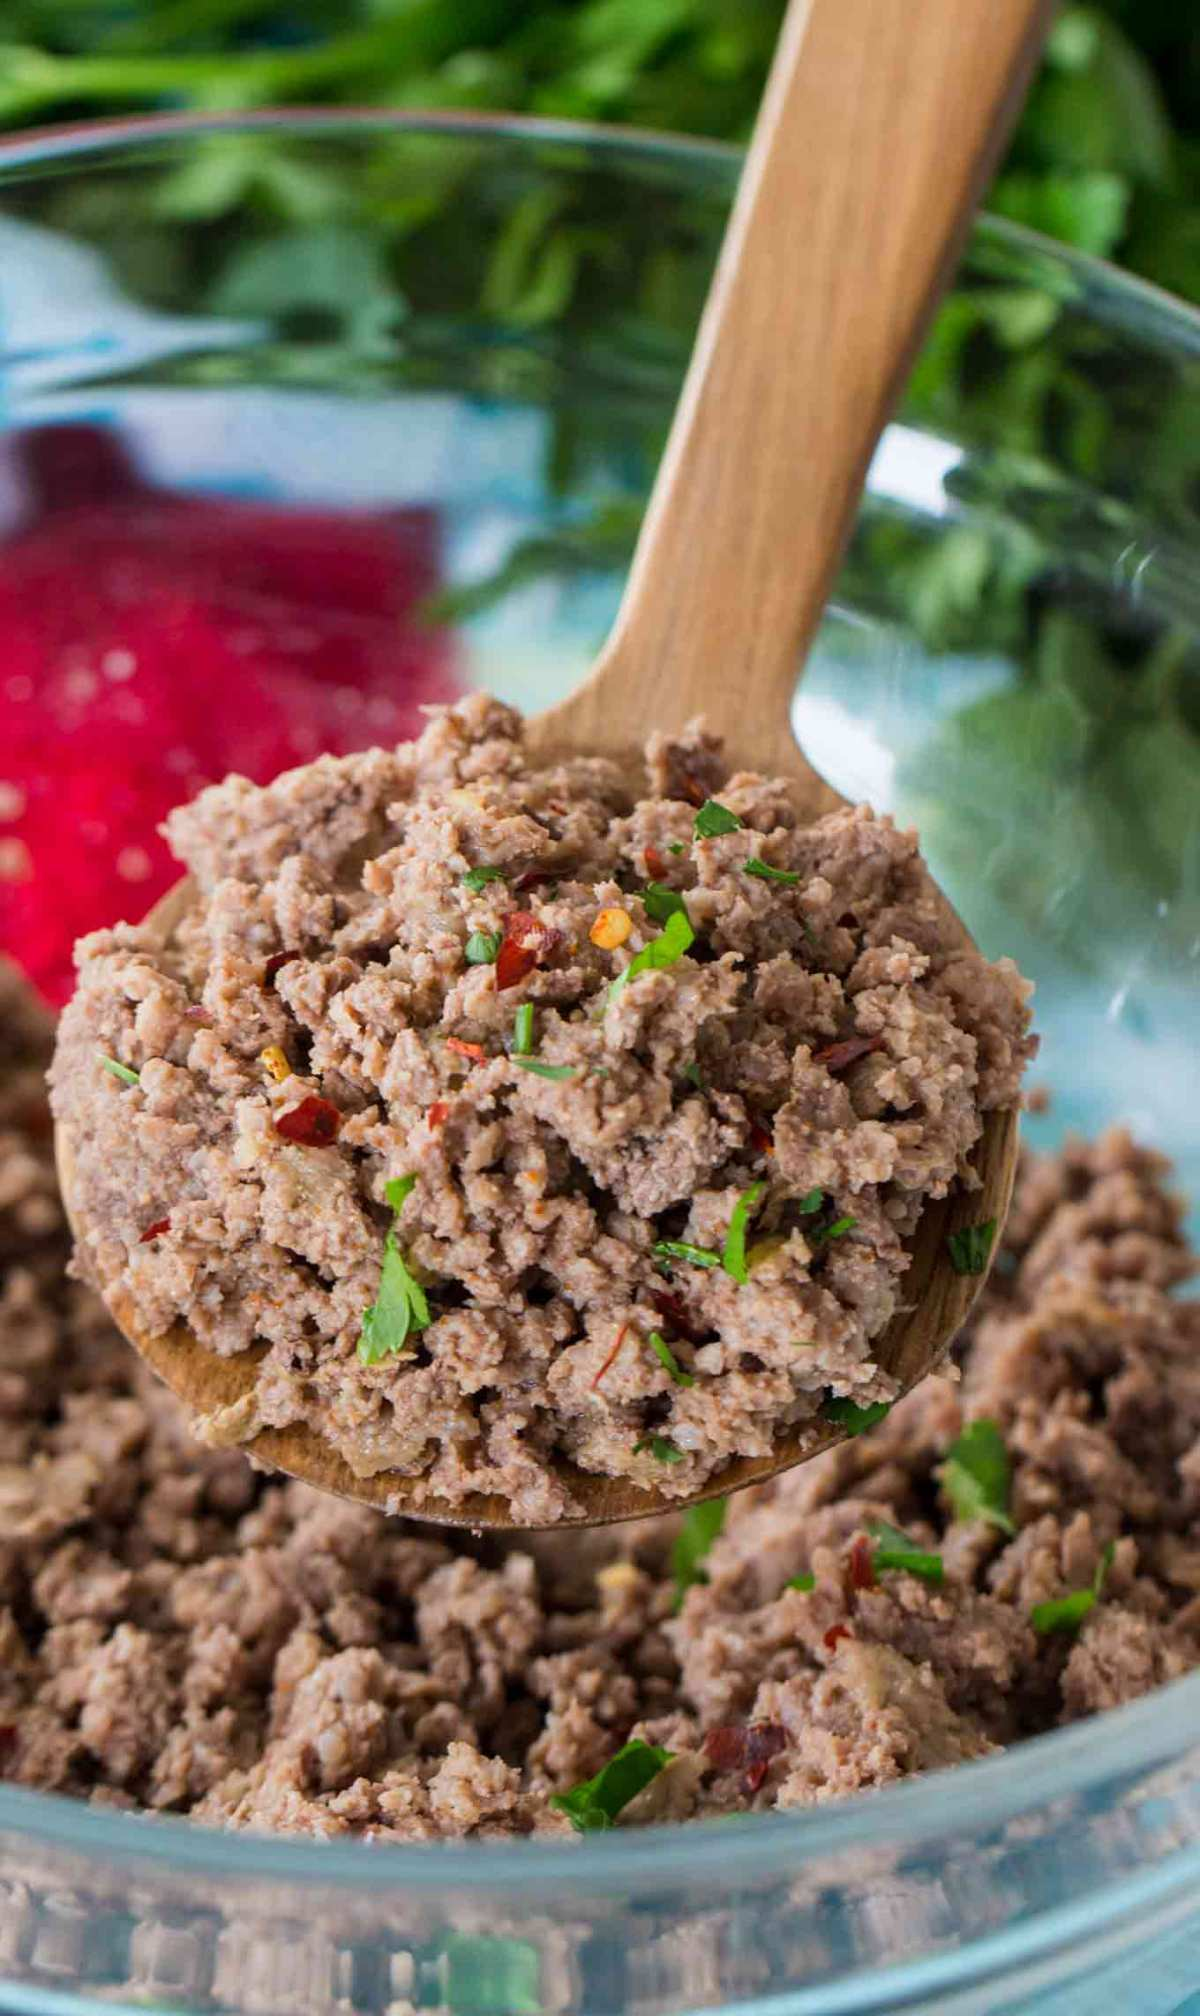 cooked seasoned ground beef in a bowl with wooden spoon